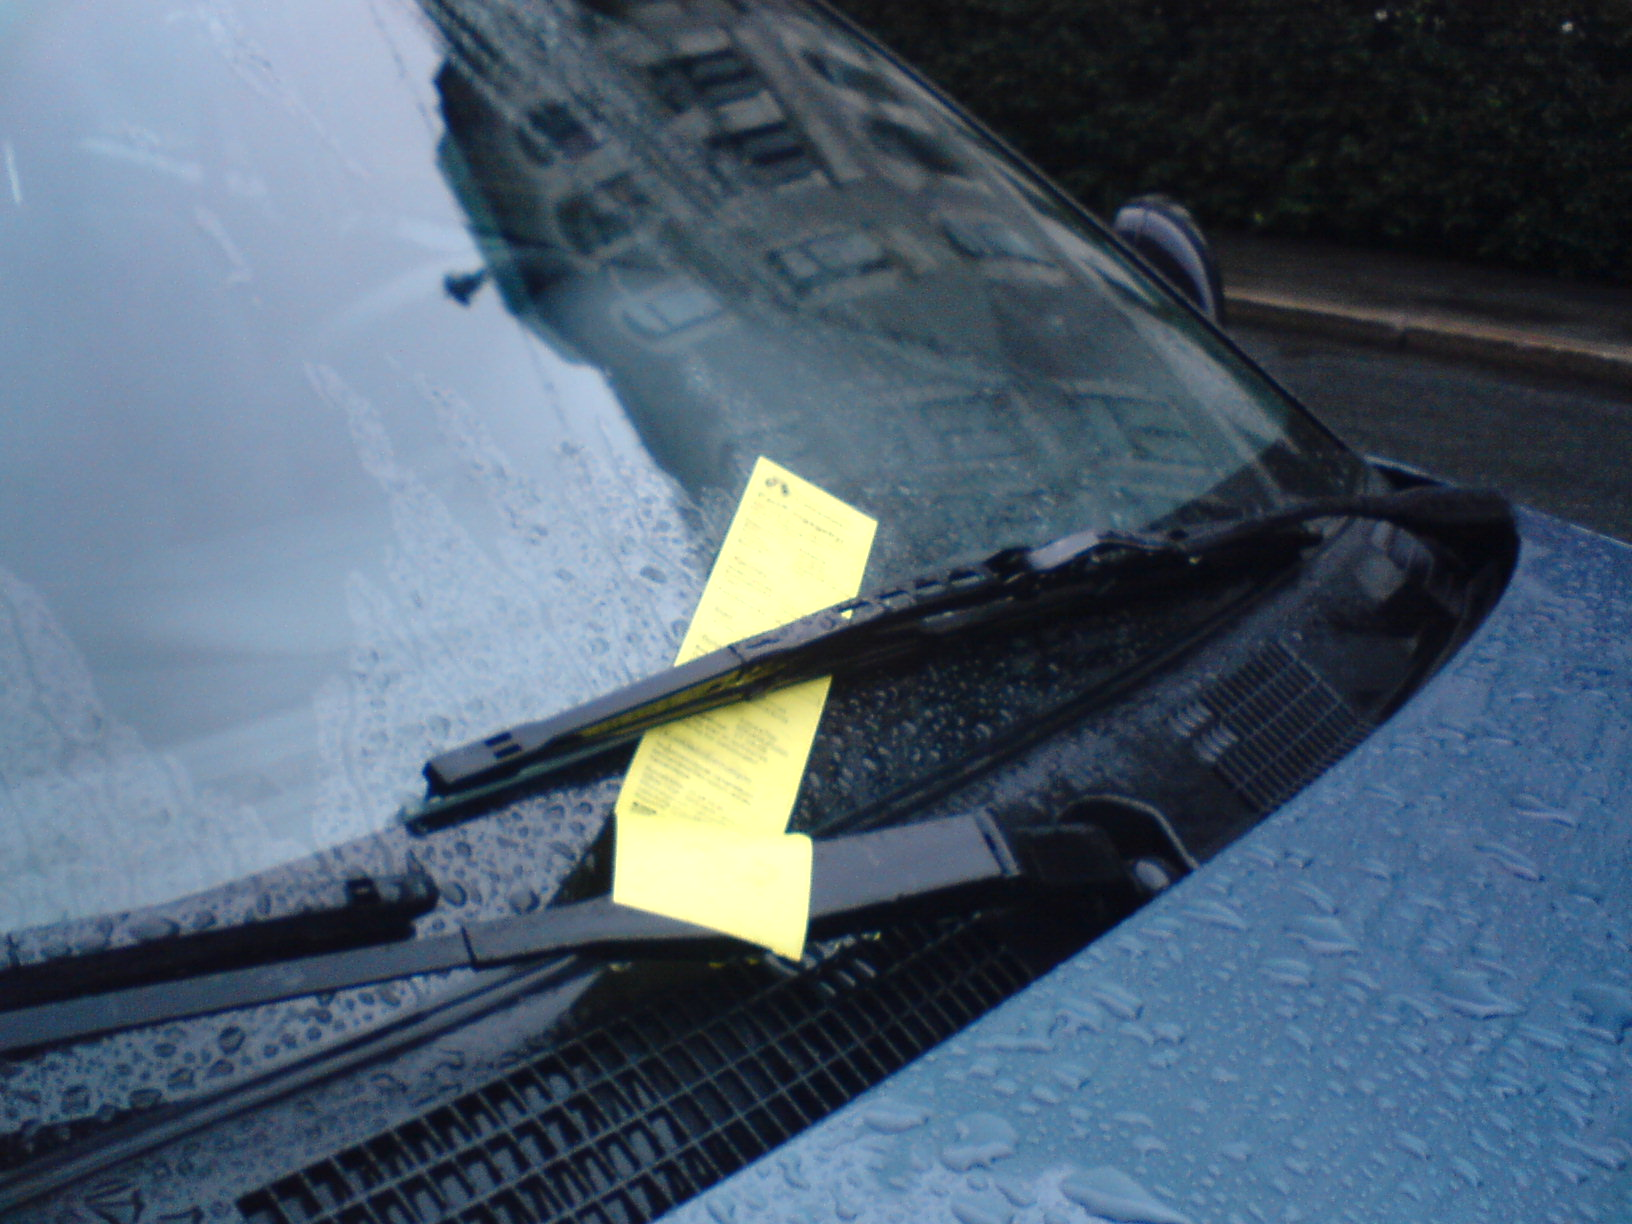 Britain's doziest driver has been hit with 55 parking tickets in just one year